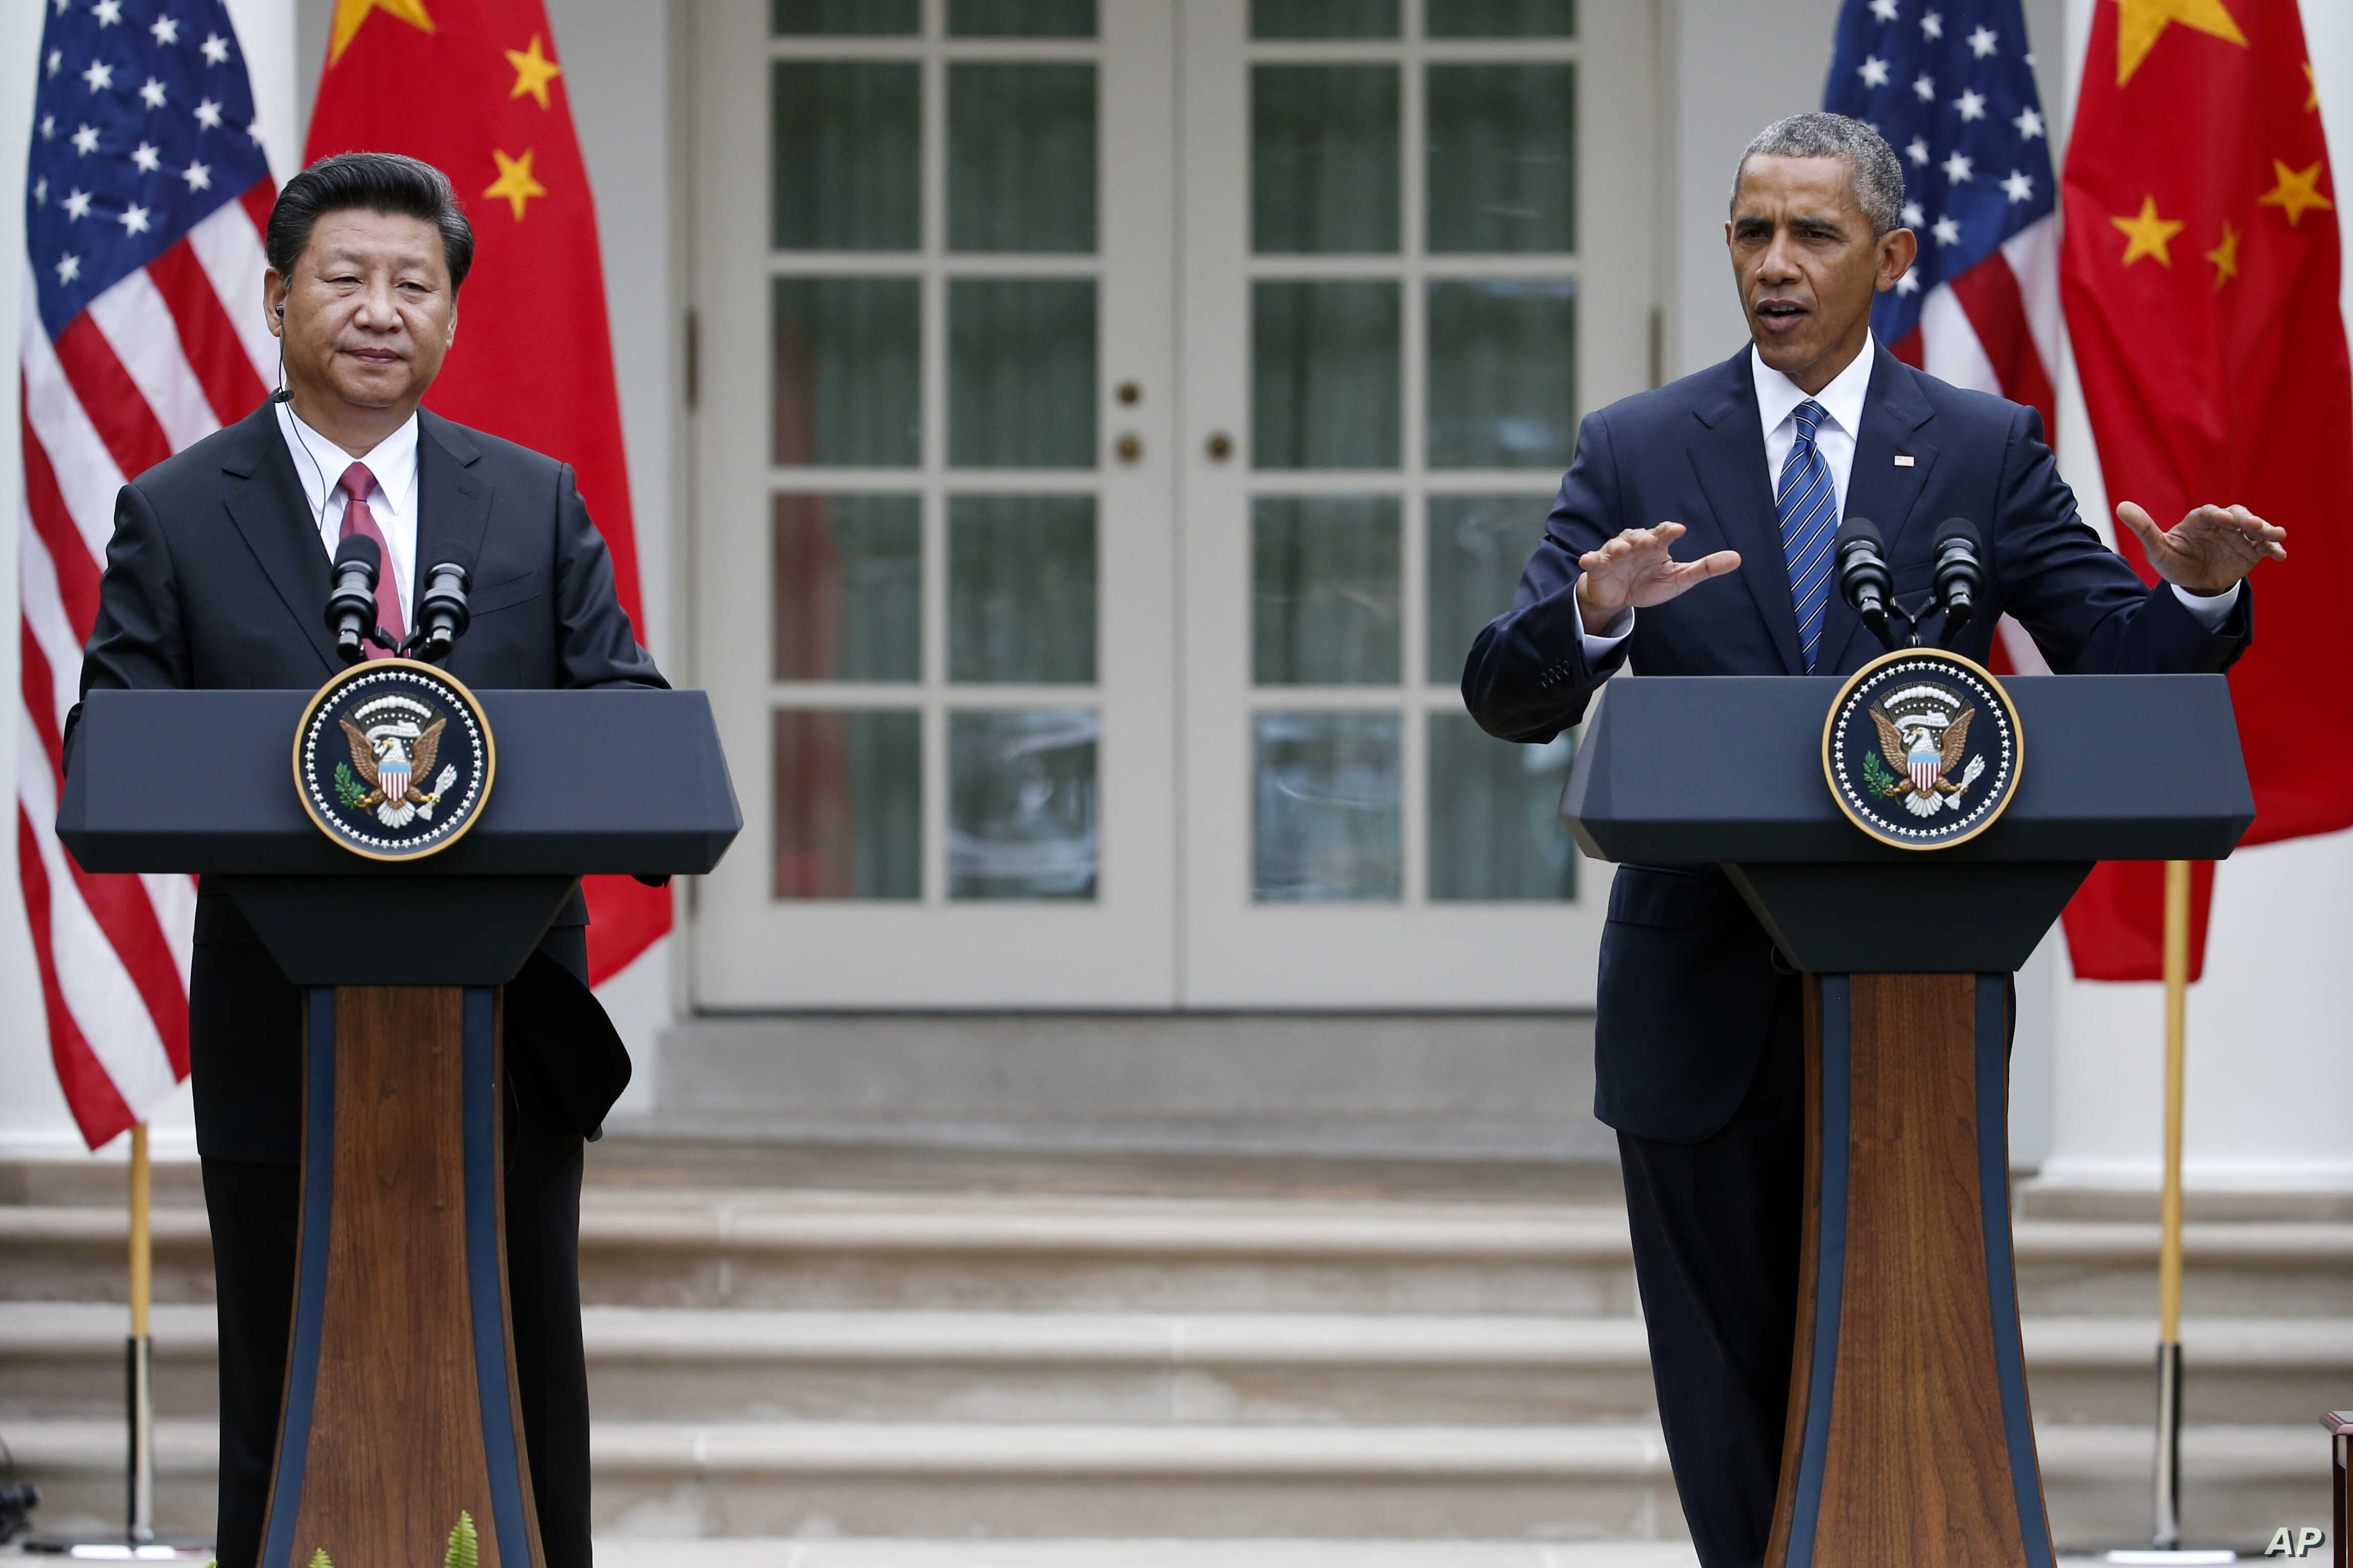 President Barack Obama gestures during a joint news conference with Chinese President Xi Jinping, Sept. 25, 2015, in the Rose Garden of the White House in Washington.